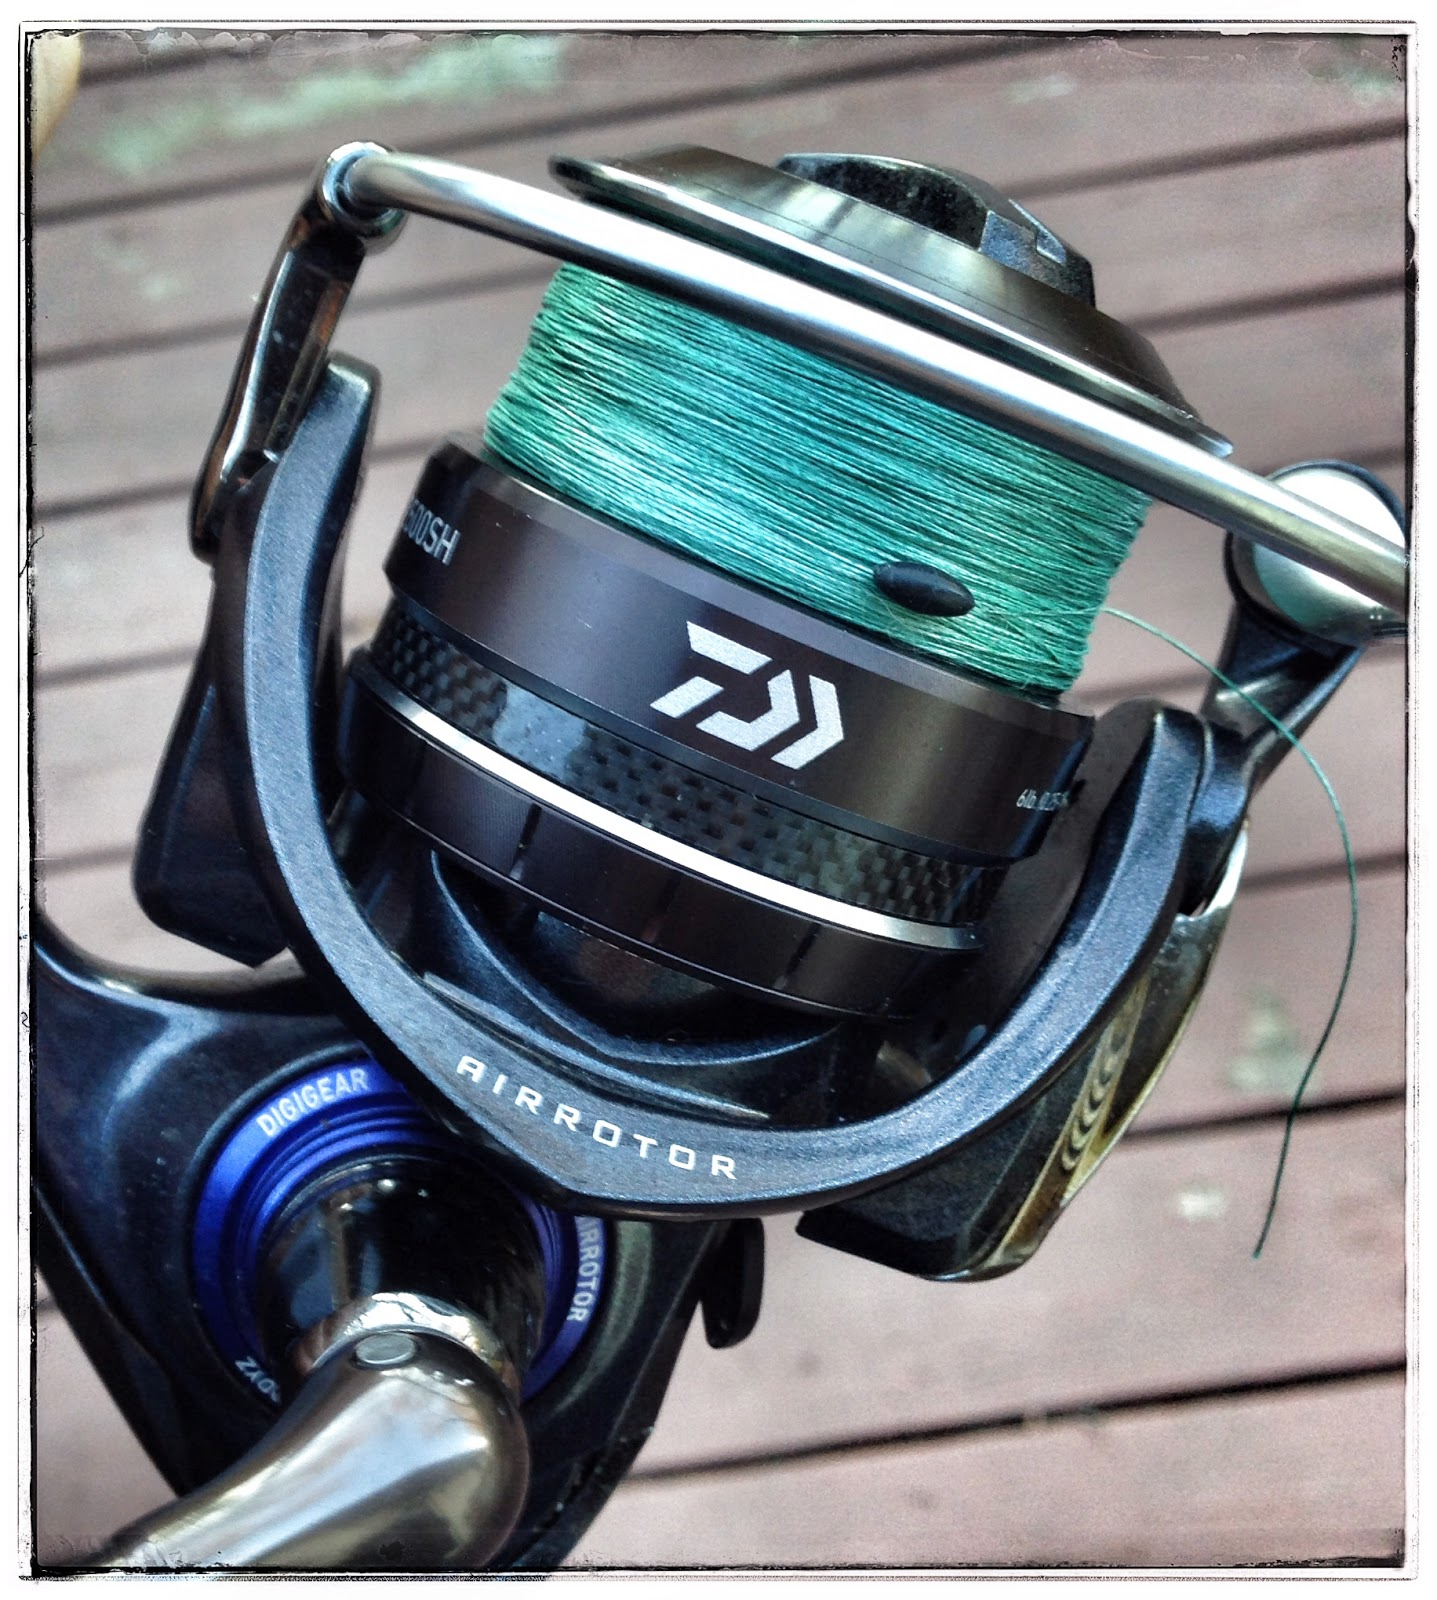 eac79412c28 I think every angler comes to a time in their life when they start to  realize that they are not only addicted to fishing but often fishing gear  as well.